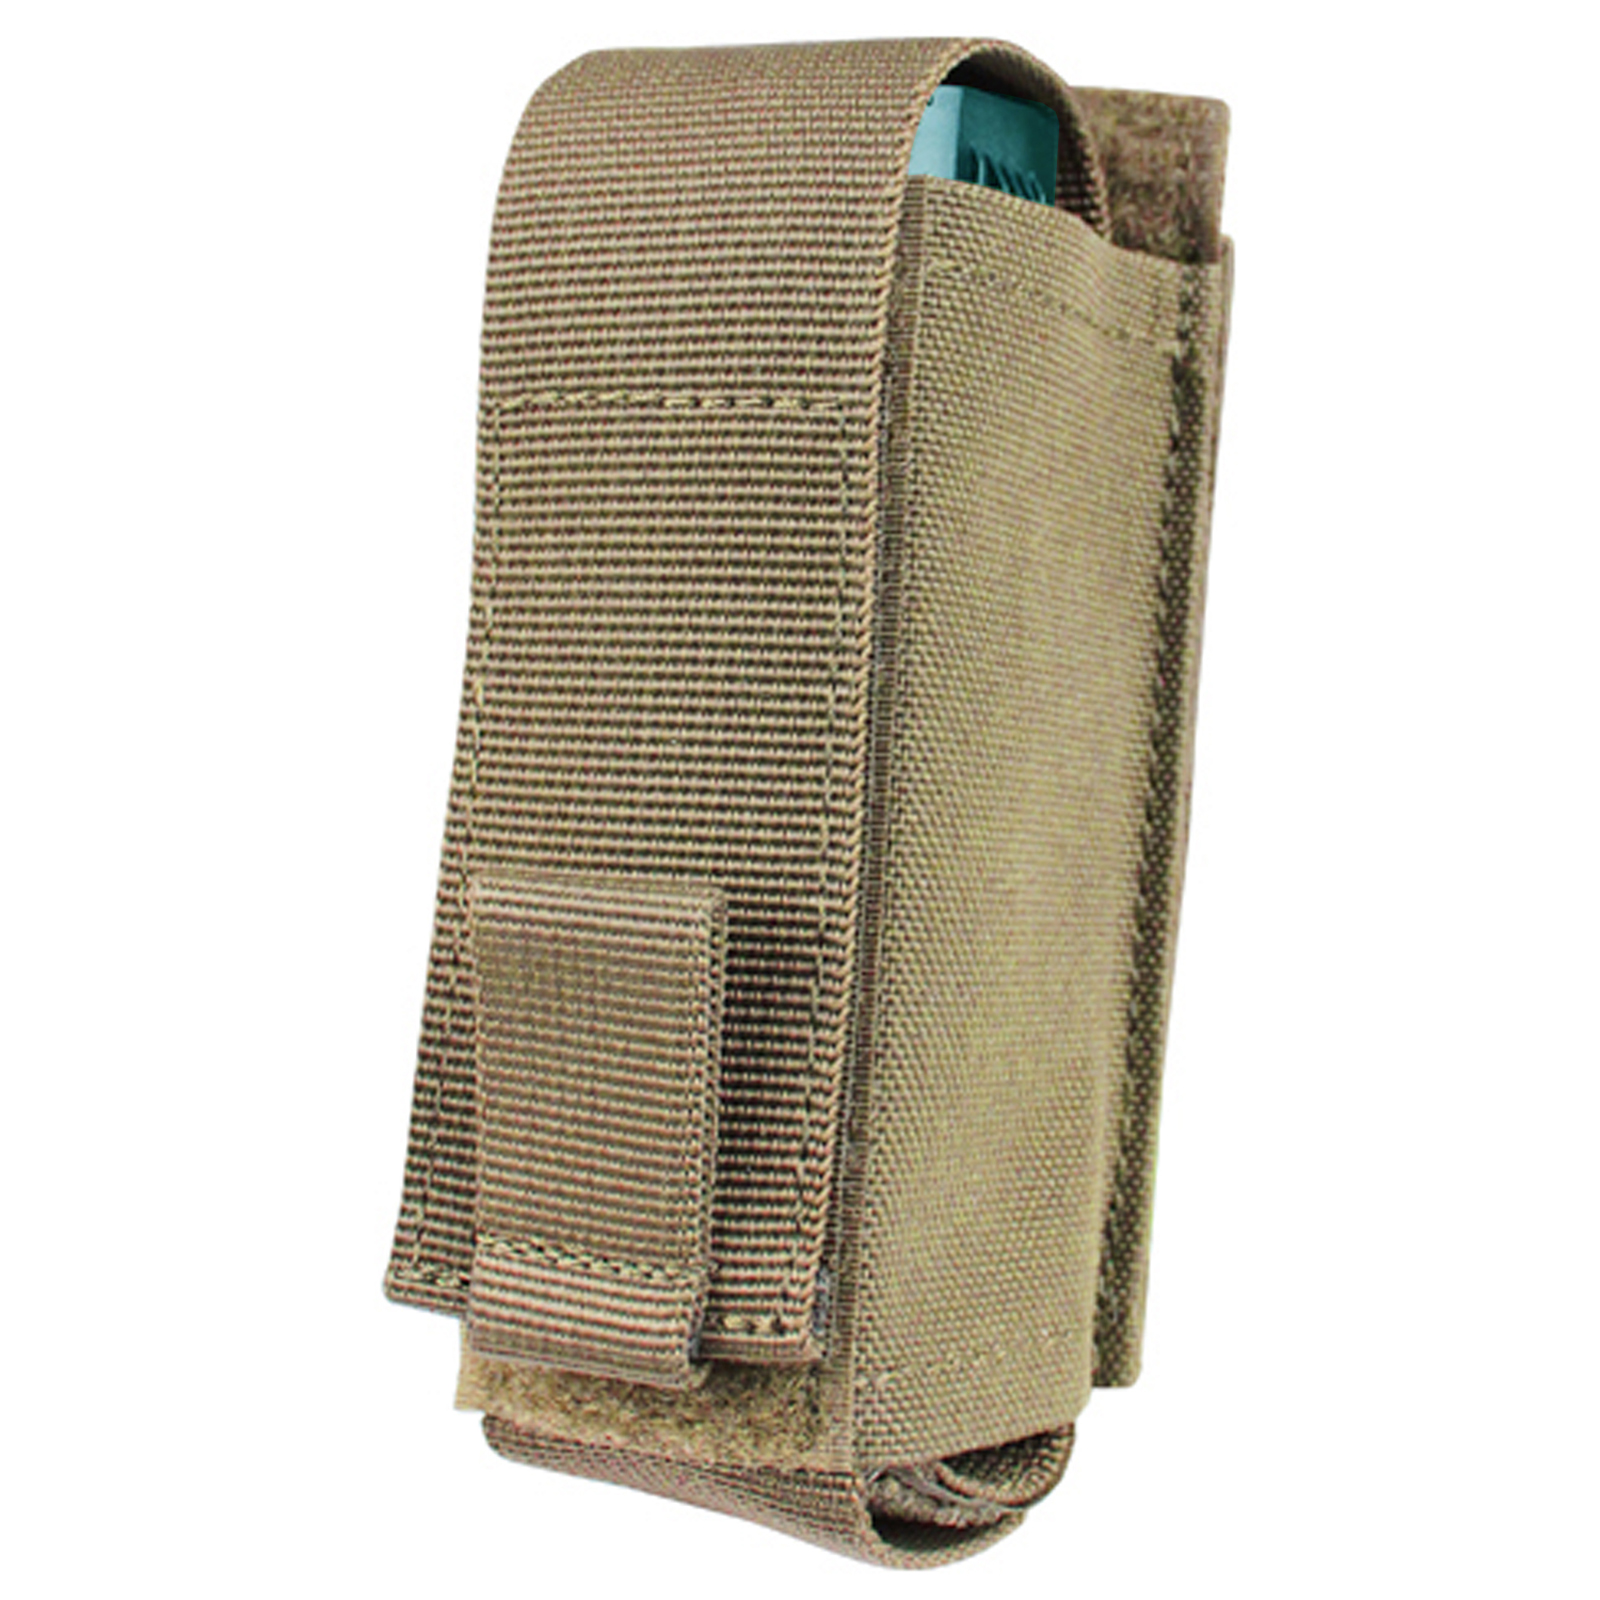 Click here to buy Condor MA78 OC Pepper Spray MOLLE Holster Pouch Tan by Condor.